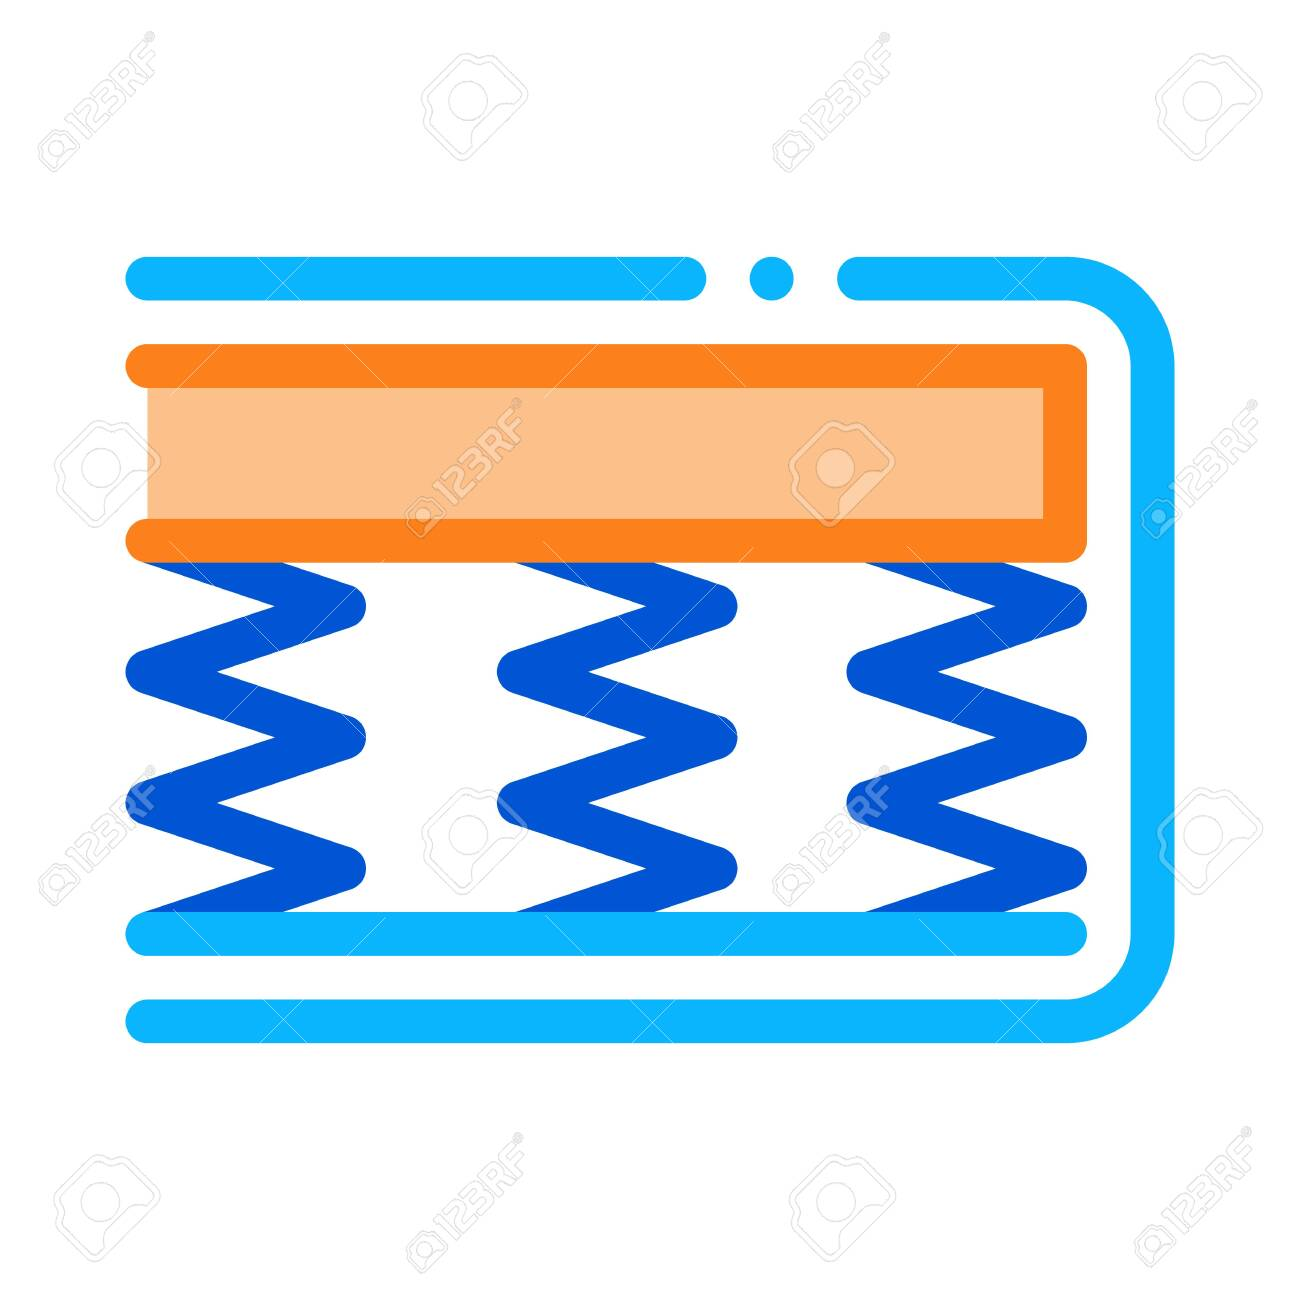 Mattress Springs Foam Icon Vector Outline Mattress Springs Foam Royalty Free Cliparts Vectors And Stock Illustration Image 137247243